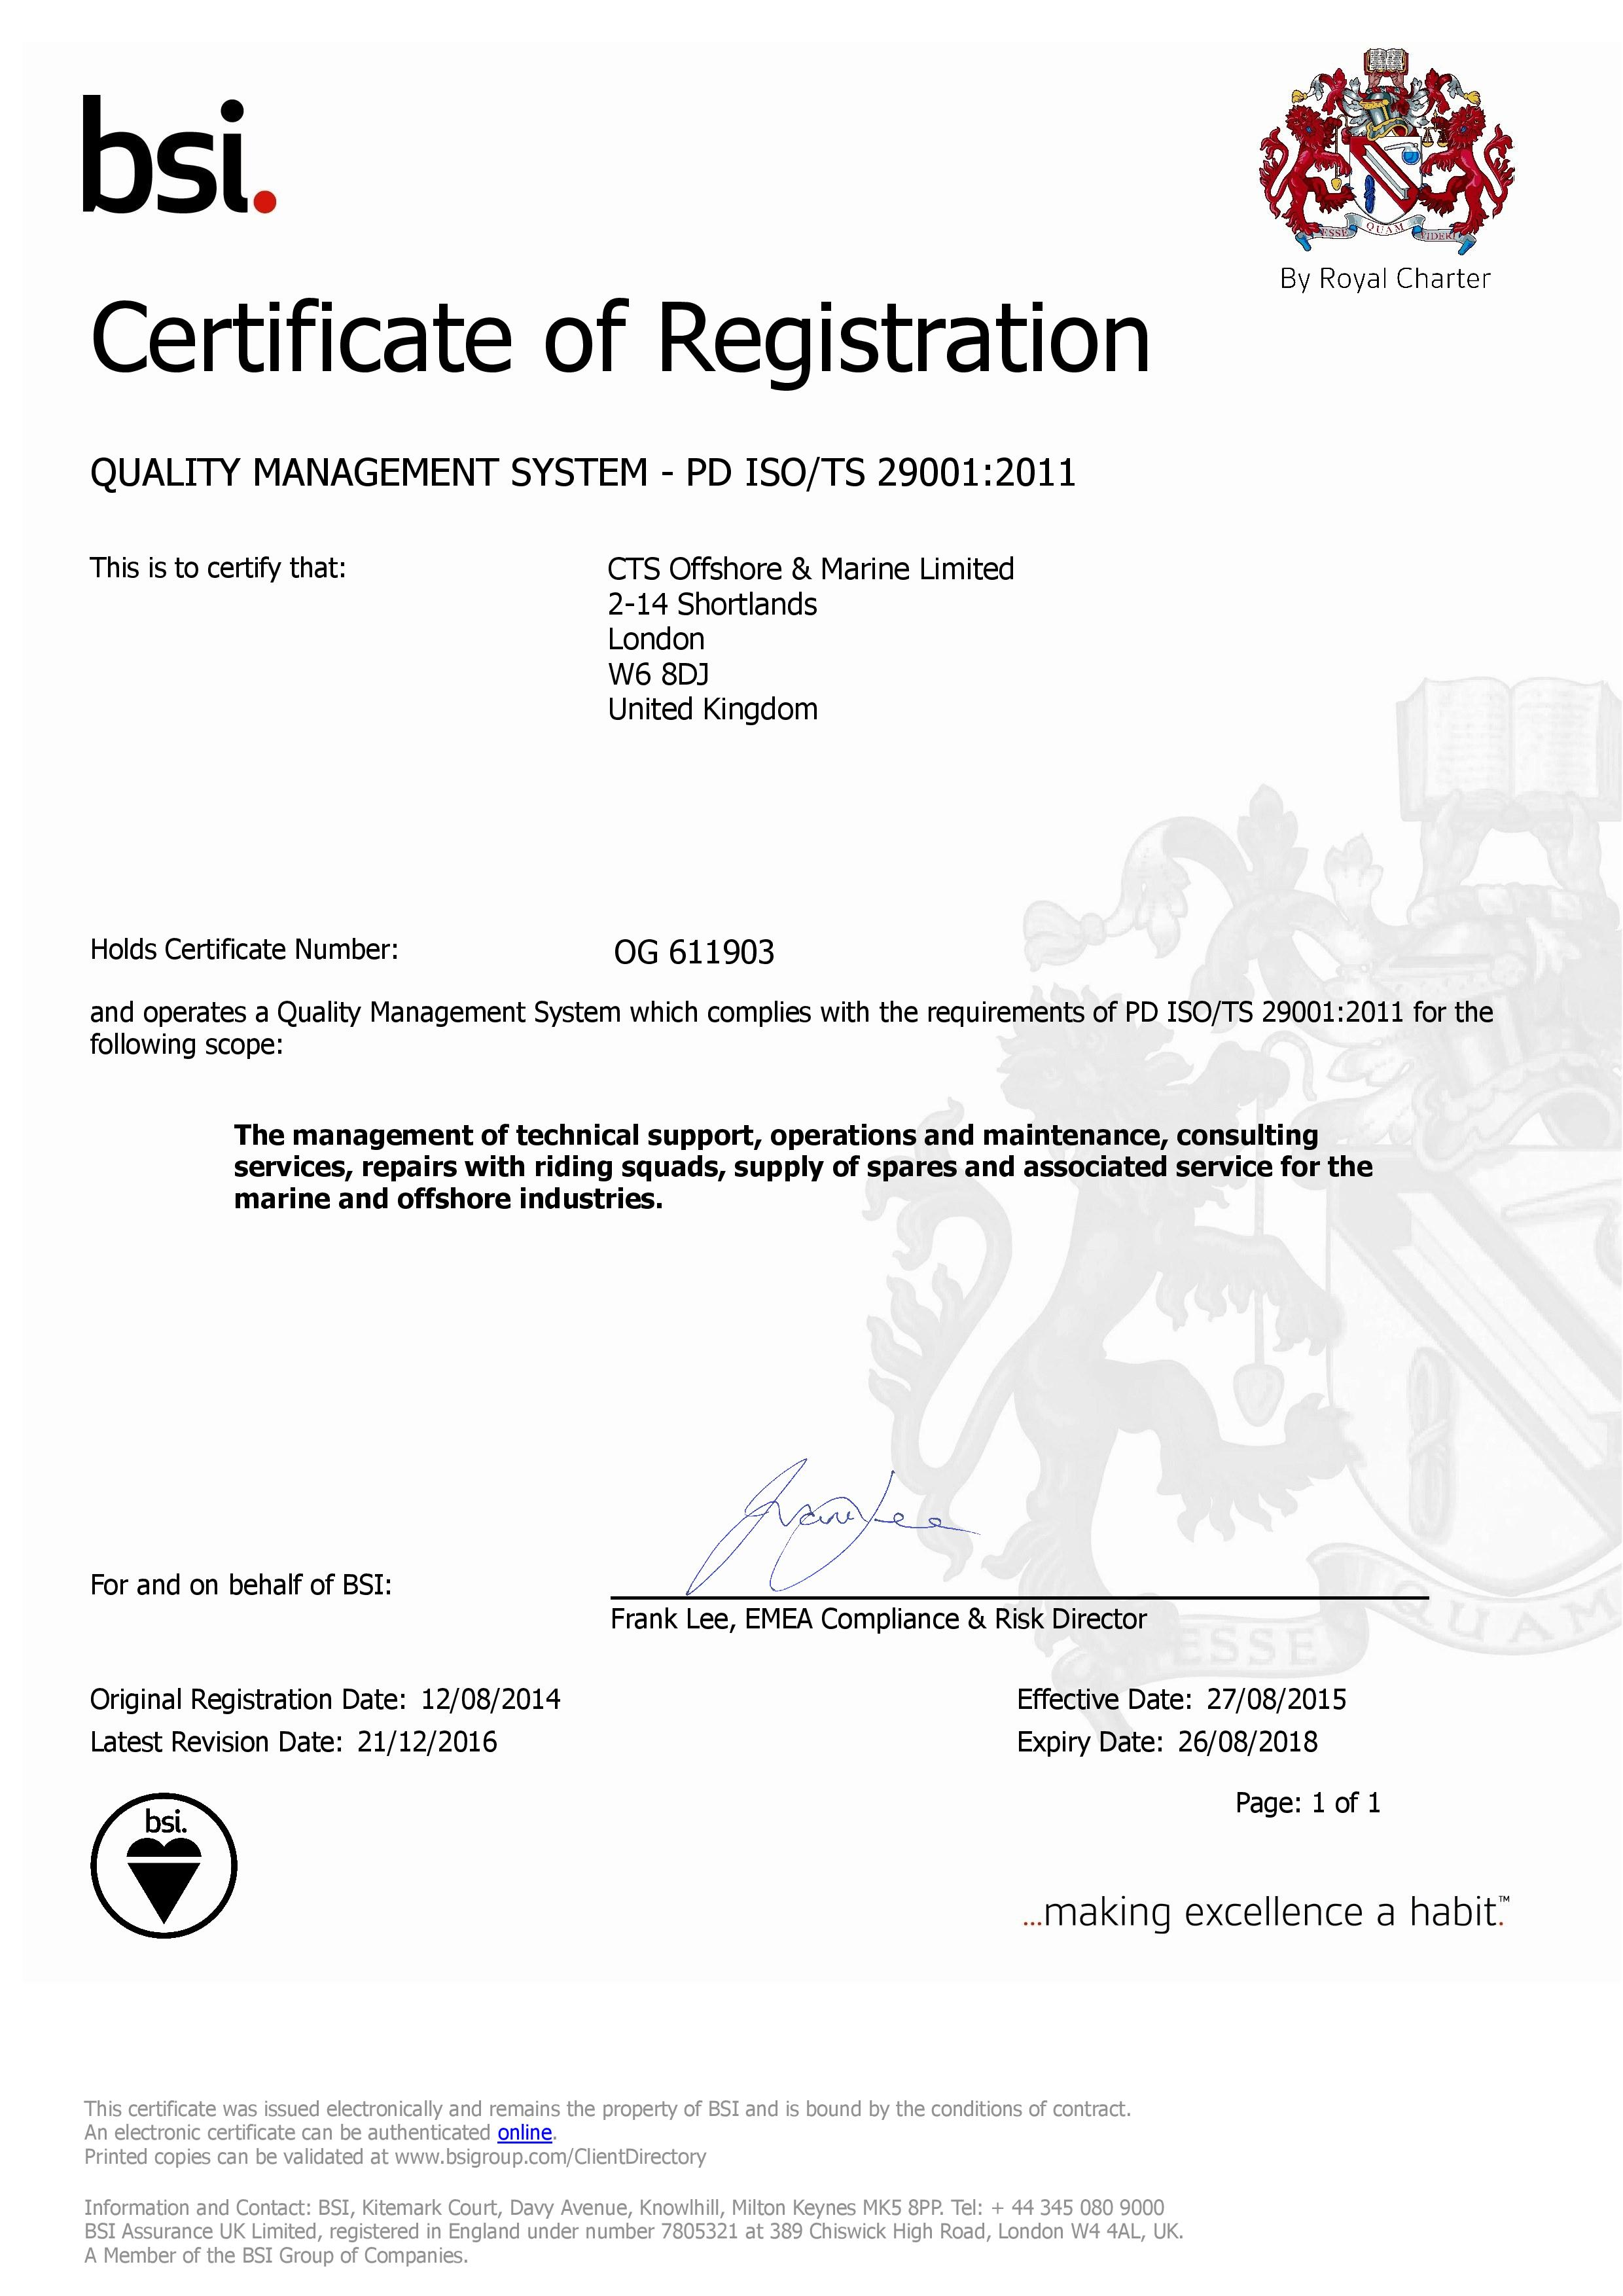 ISO 29001 Certificate | CTS Offshore and Marine Limited